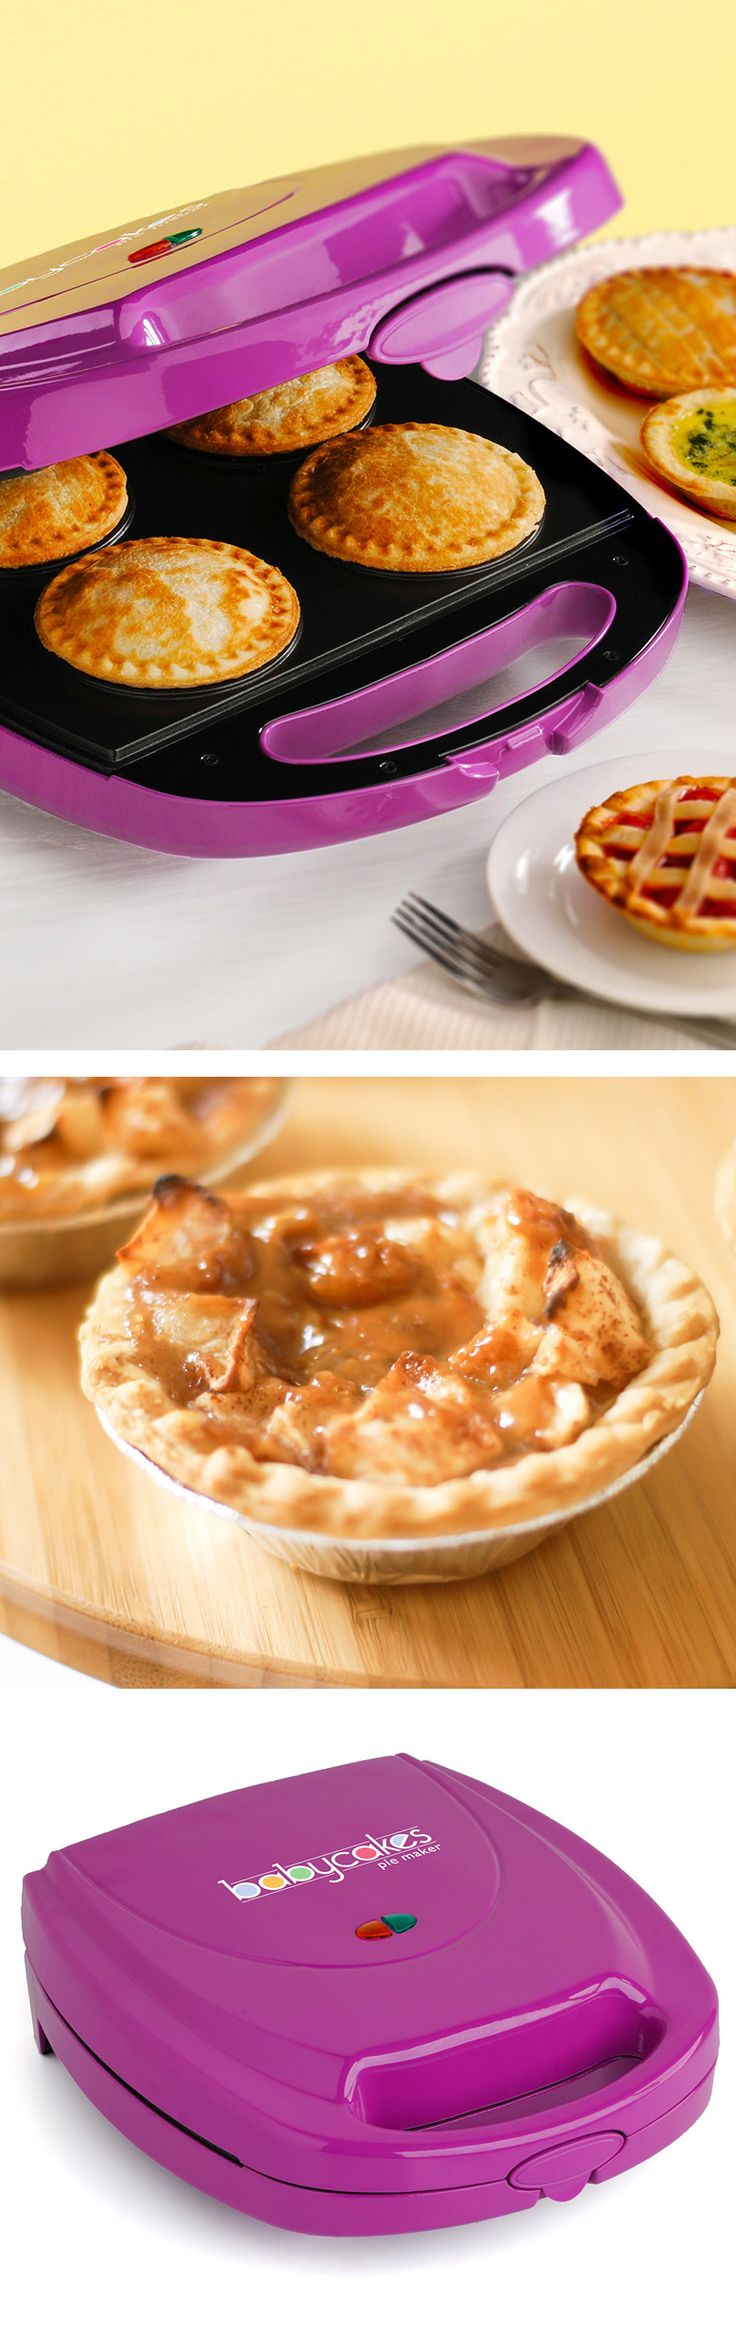 Mini pie maker in purple // oh yum! perfect for parties! Can make any pie or quiche in 10-15mins #radiant_orchid